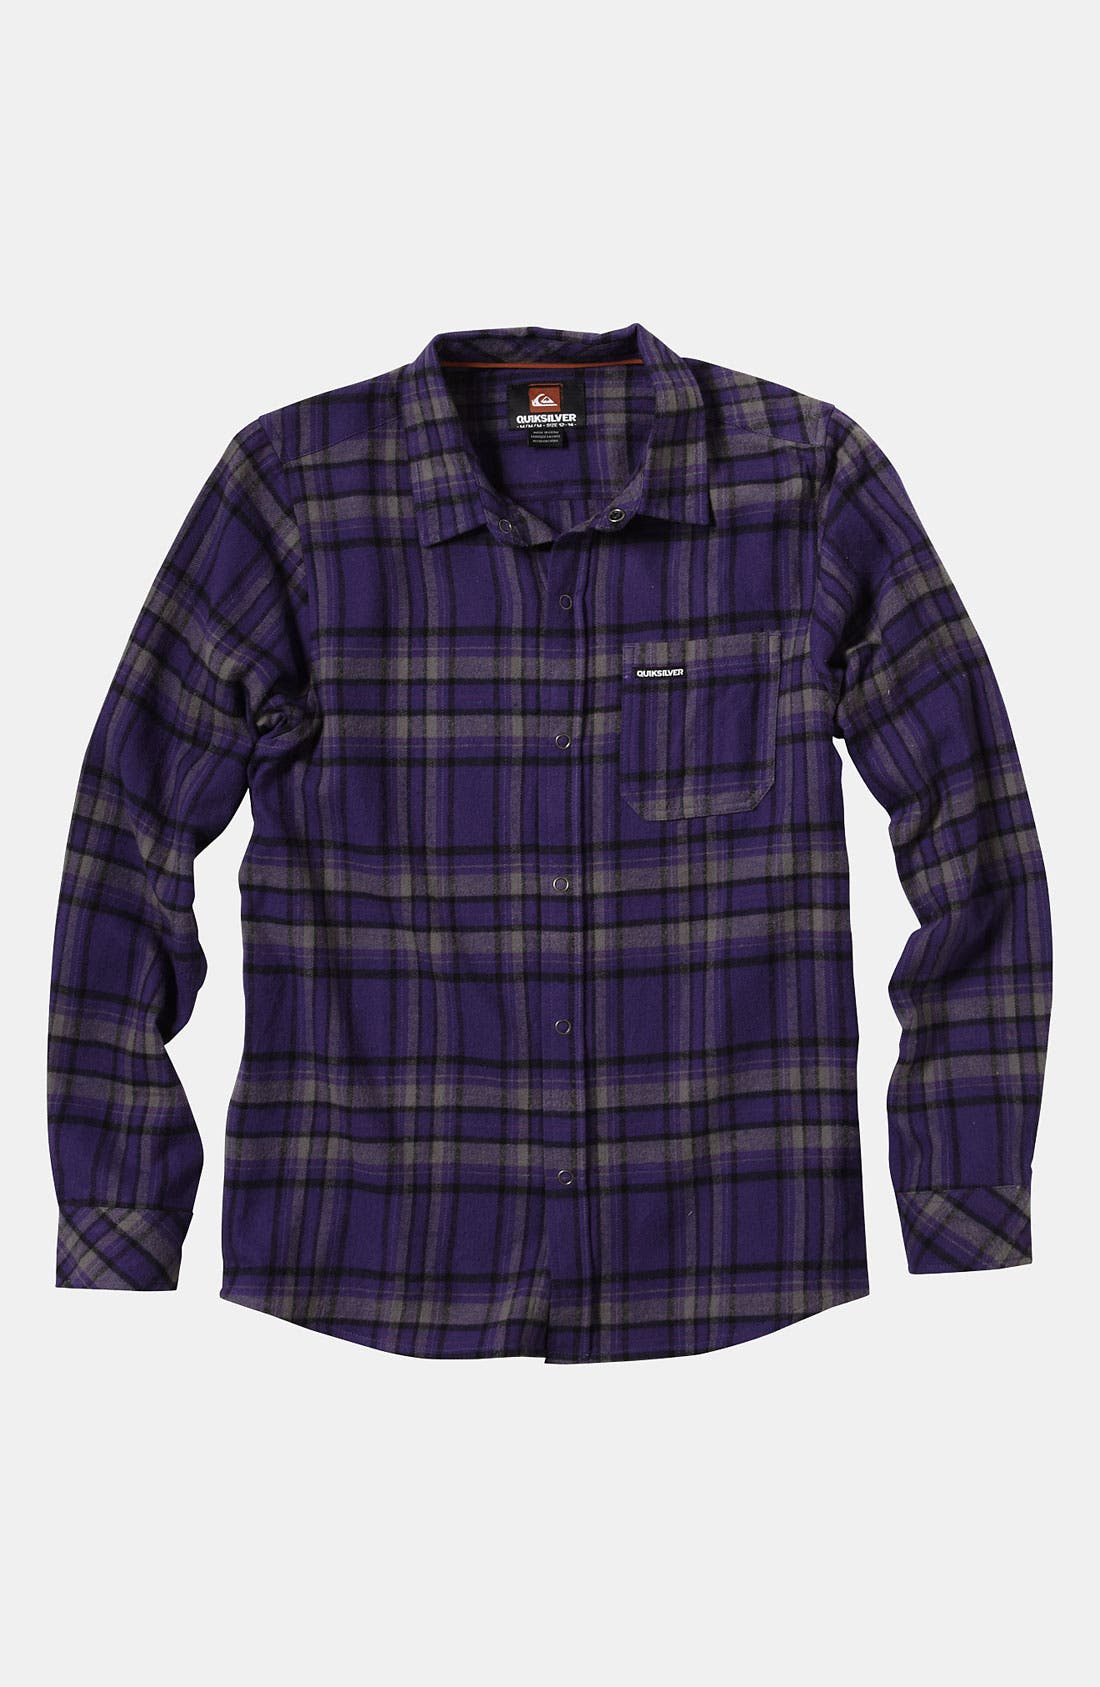 Alternate Image 1 Selected - Quiksilver 'Bunga Bunga' Woven Shirt (Big Boys)